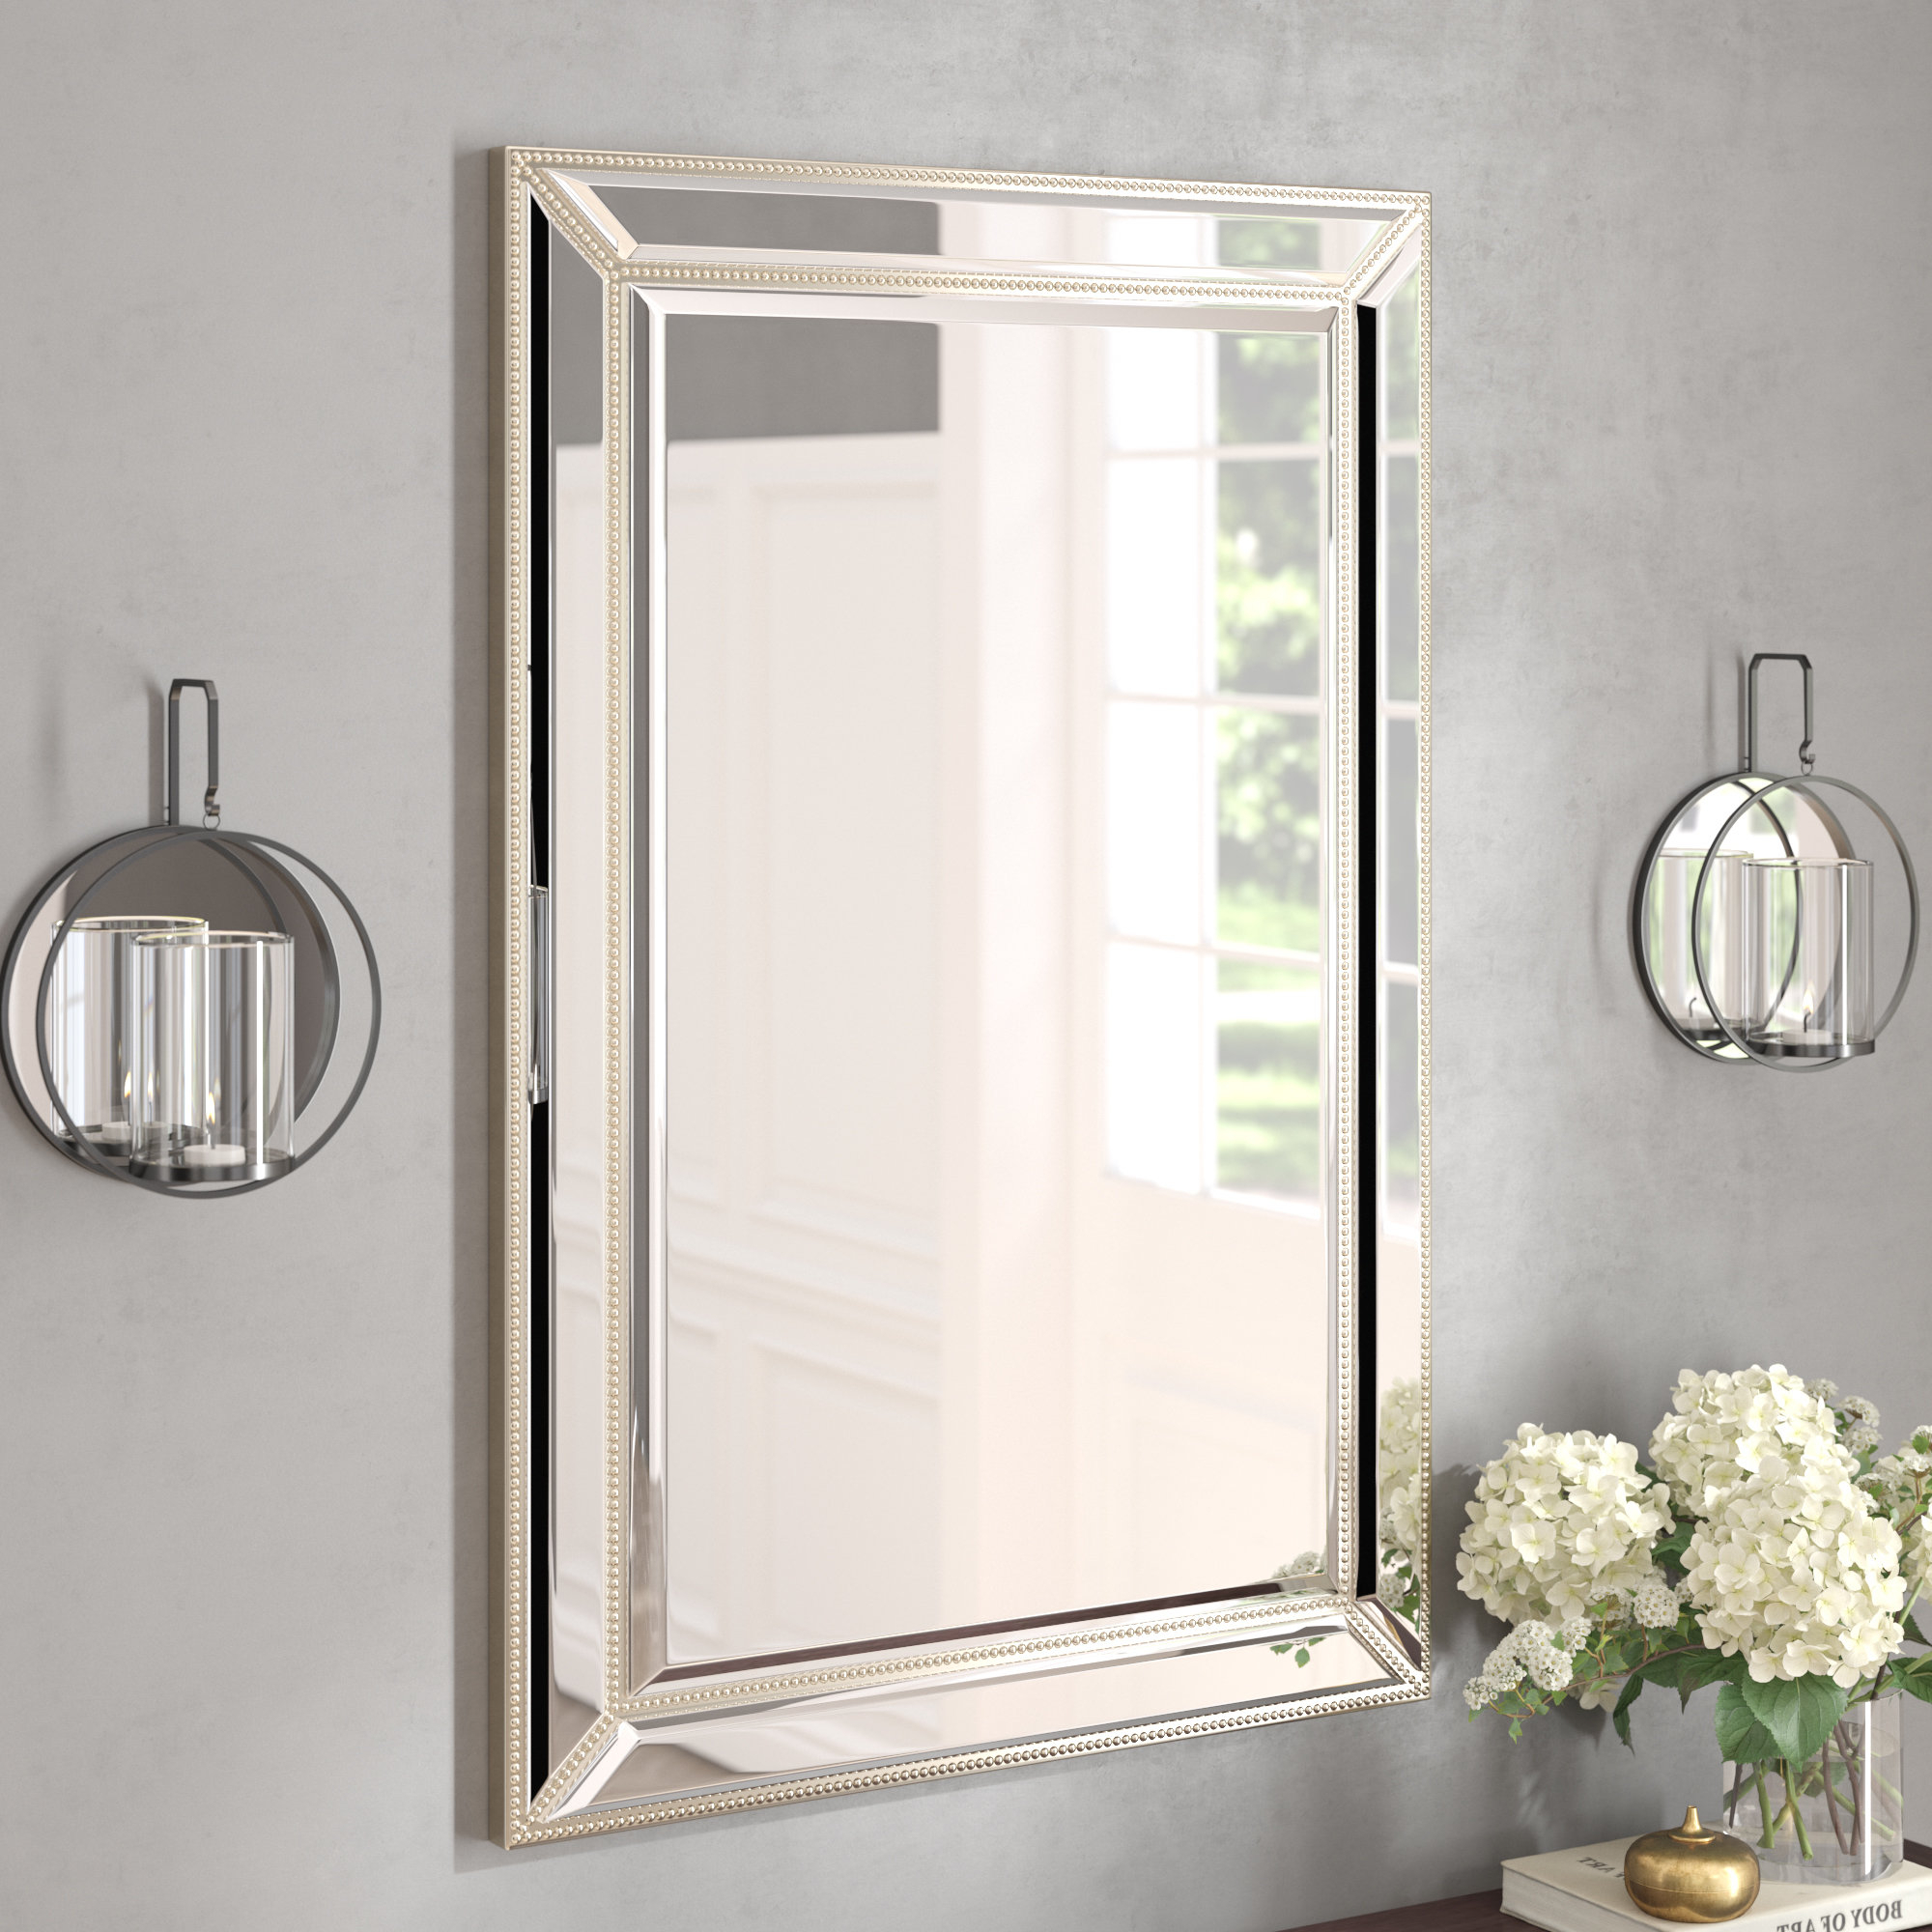 Tutuala Traditional Beveled Accent Mirror Intended For Best And Newest Willacoochee Traditional Beveled Accent Mirrors (View 11 of 20)